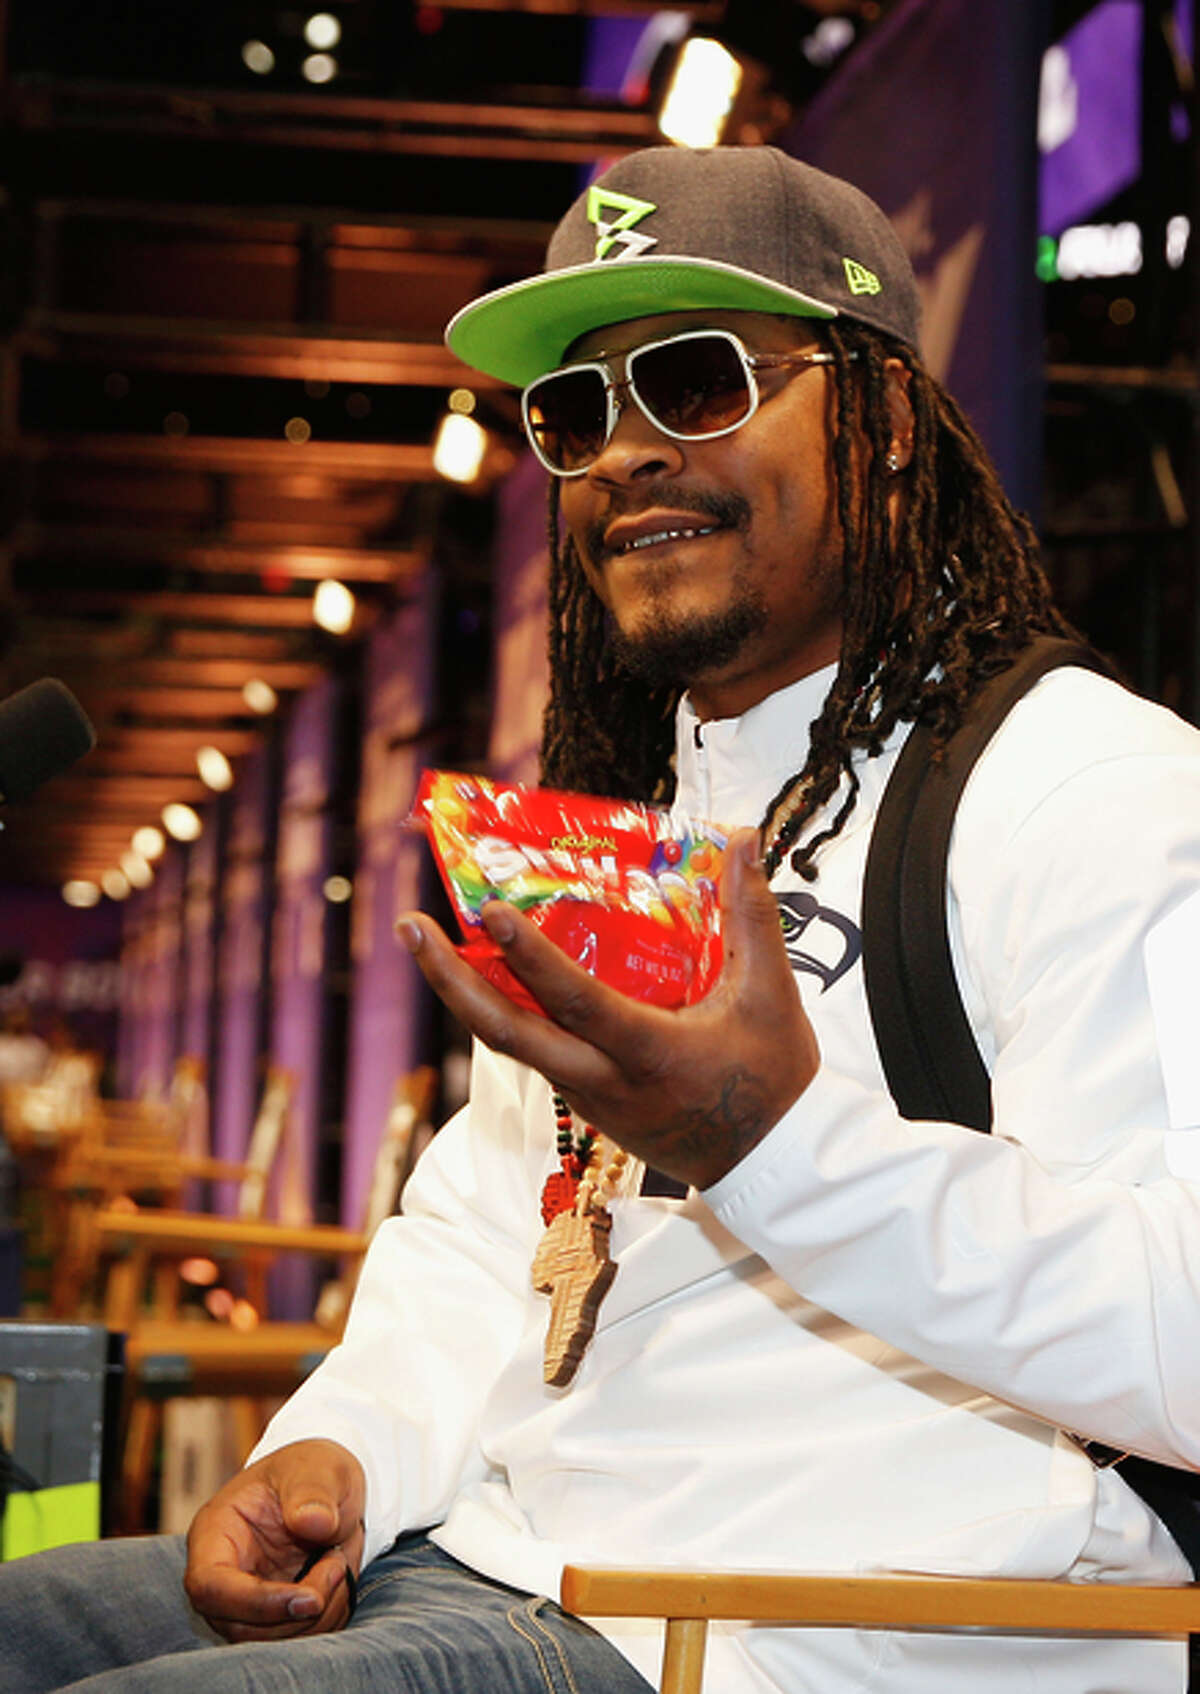 FILE --A Skittles ad has been a sweet success for Marshawn Lynch, who has been a fan of the candy since his early football days. Skittles now has launched a limited edition version of the candy featuring Lynch on its wrapper.